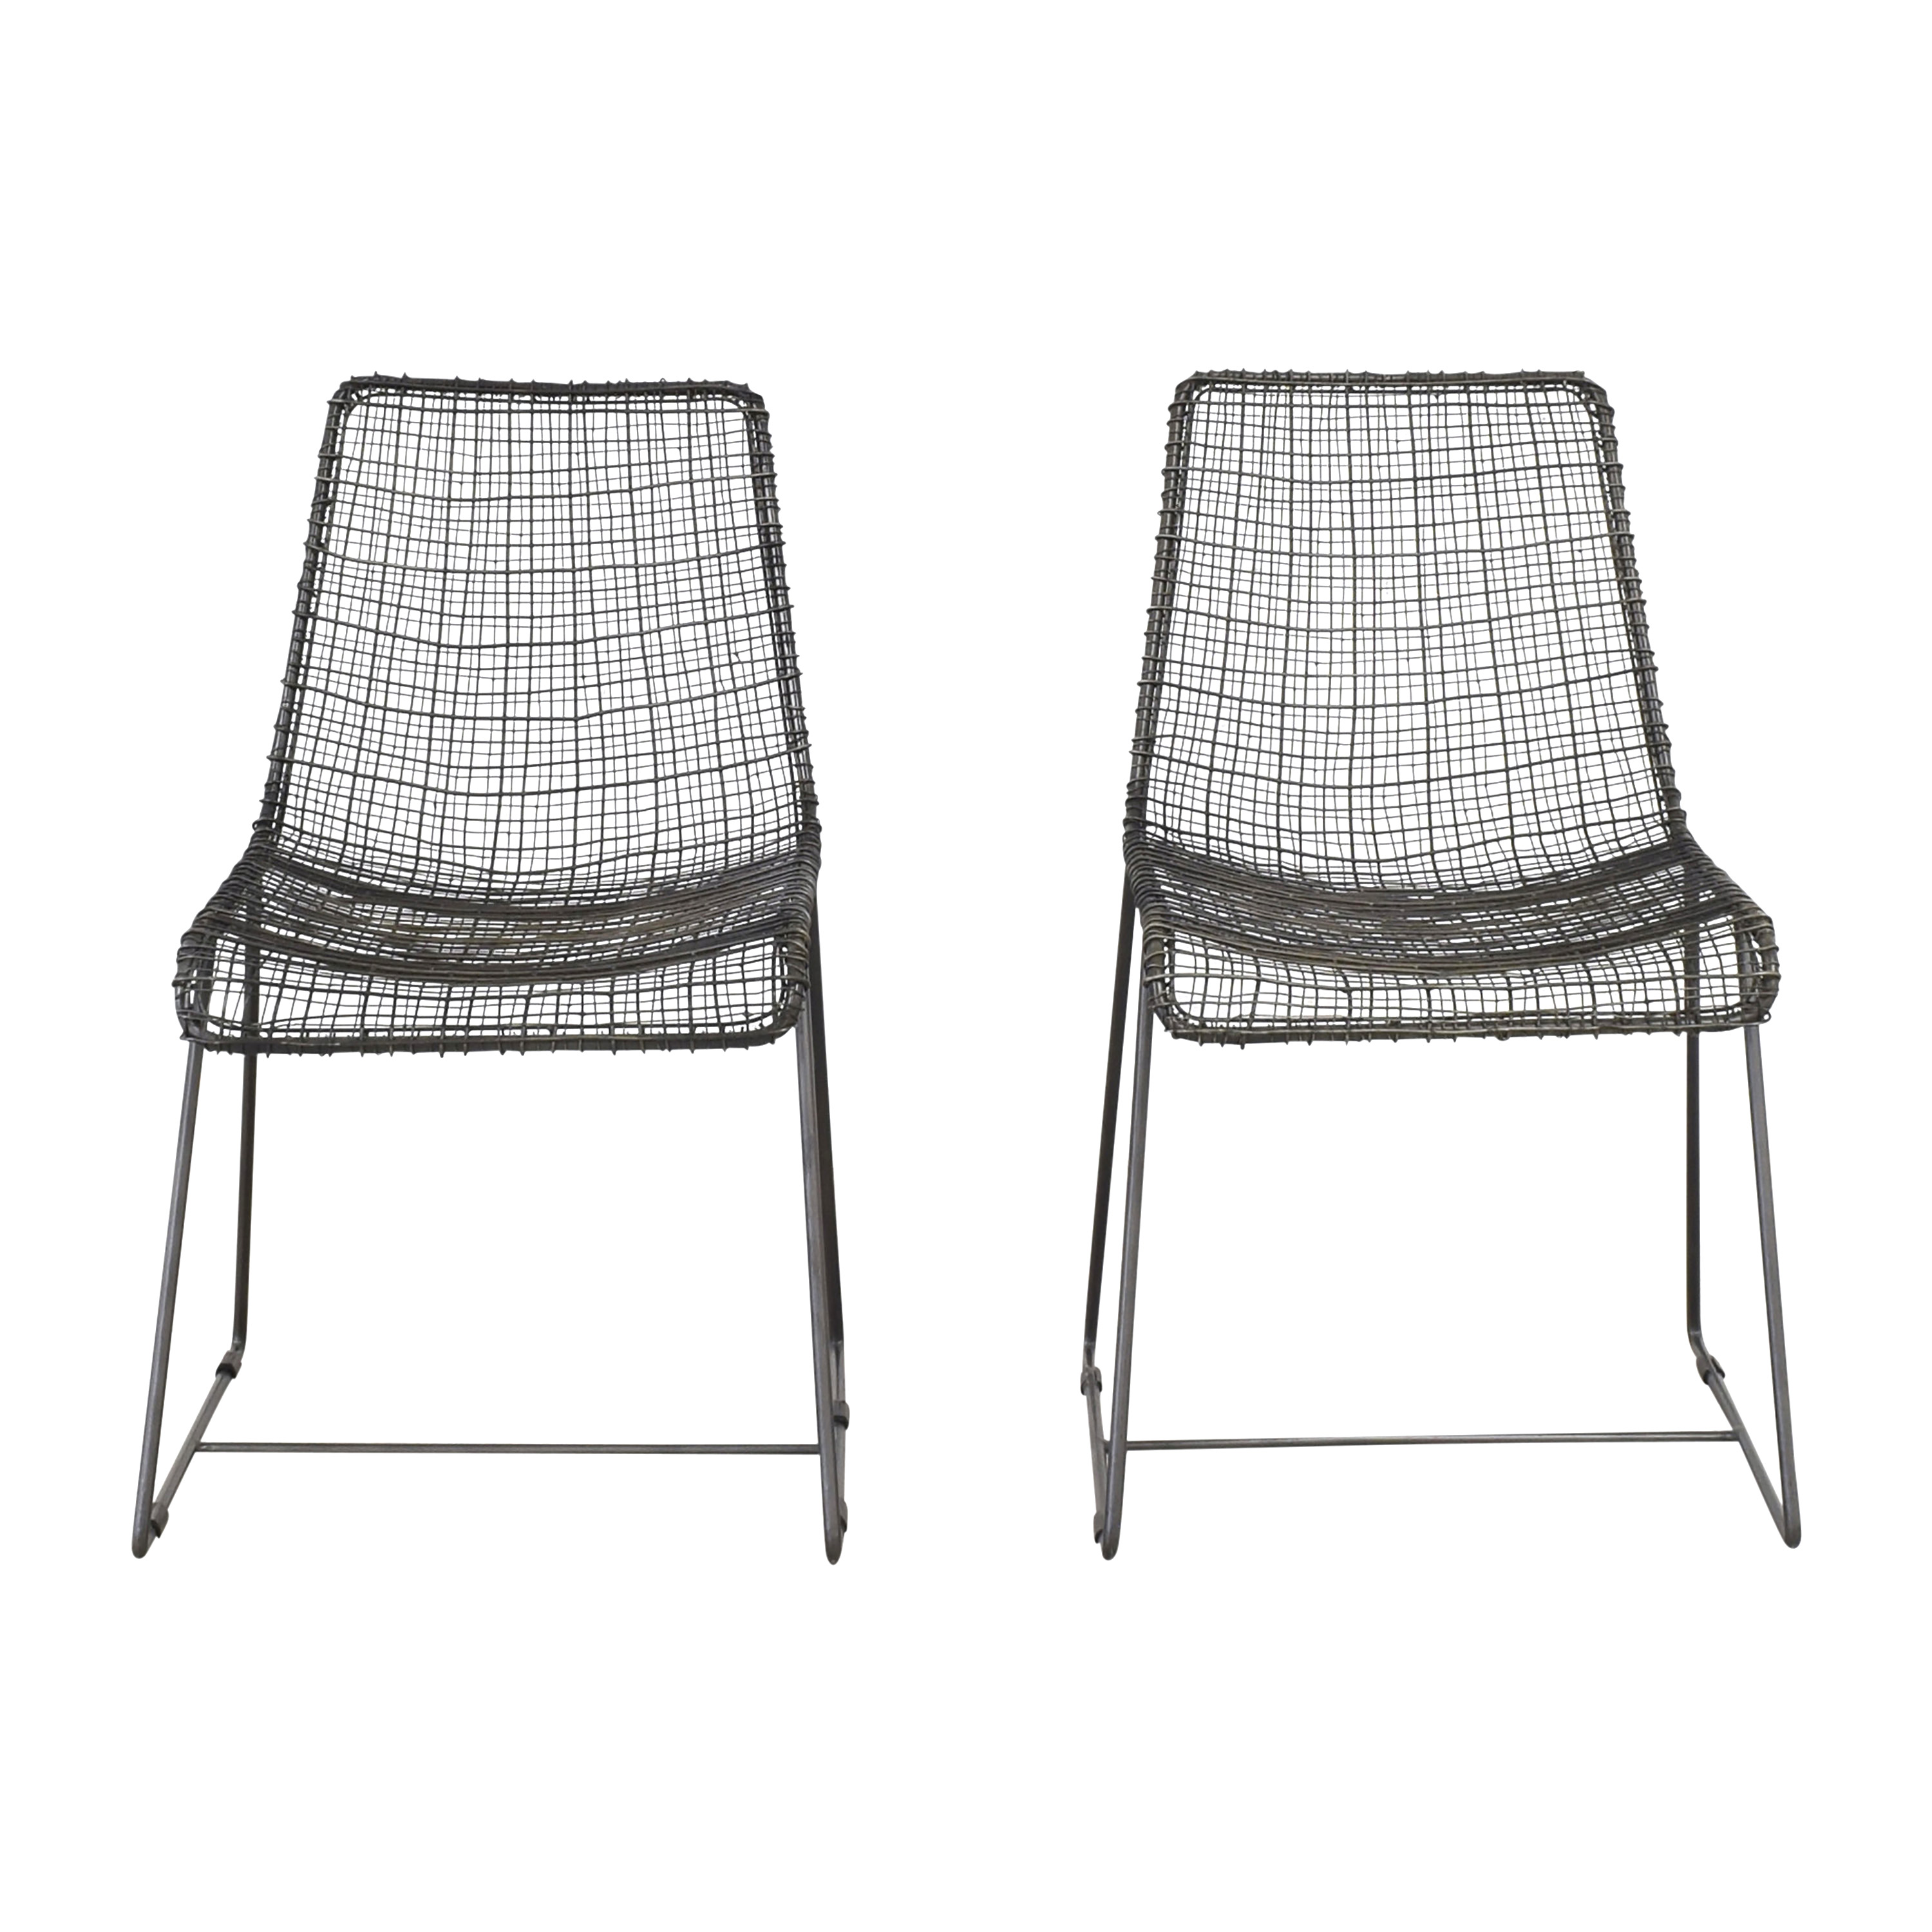 CB2 CB2 Reed Chairs dimensions